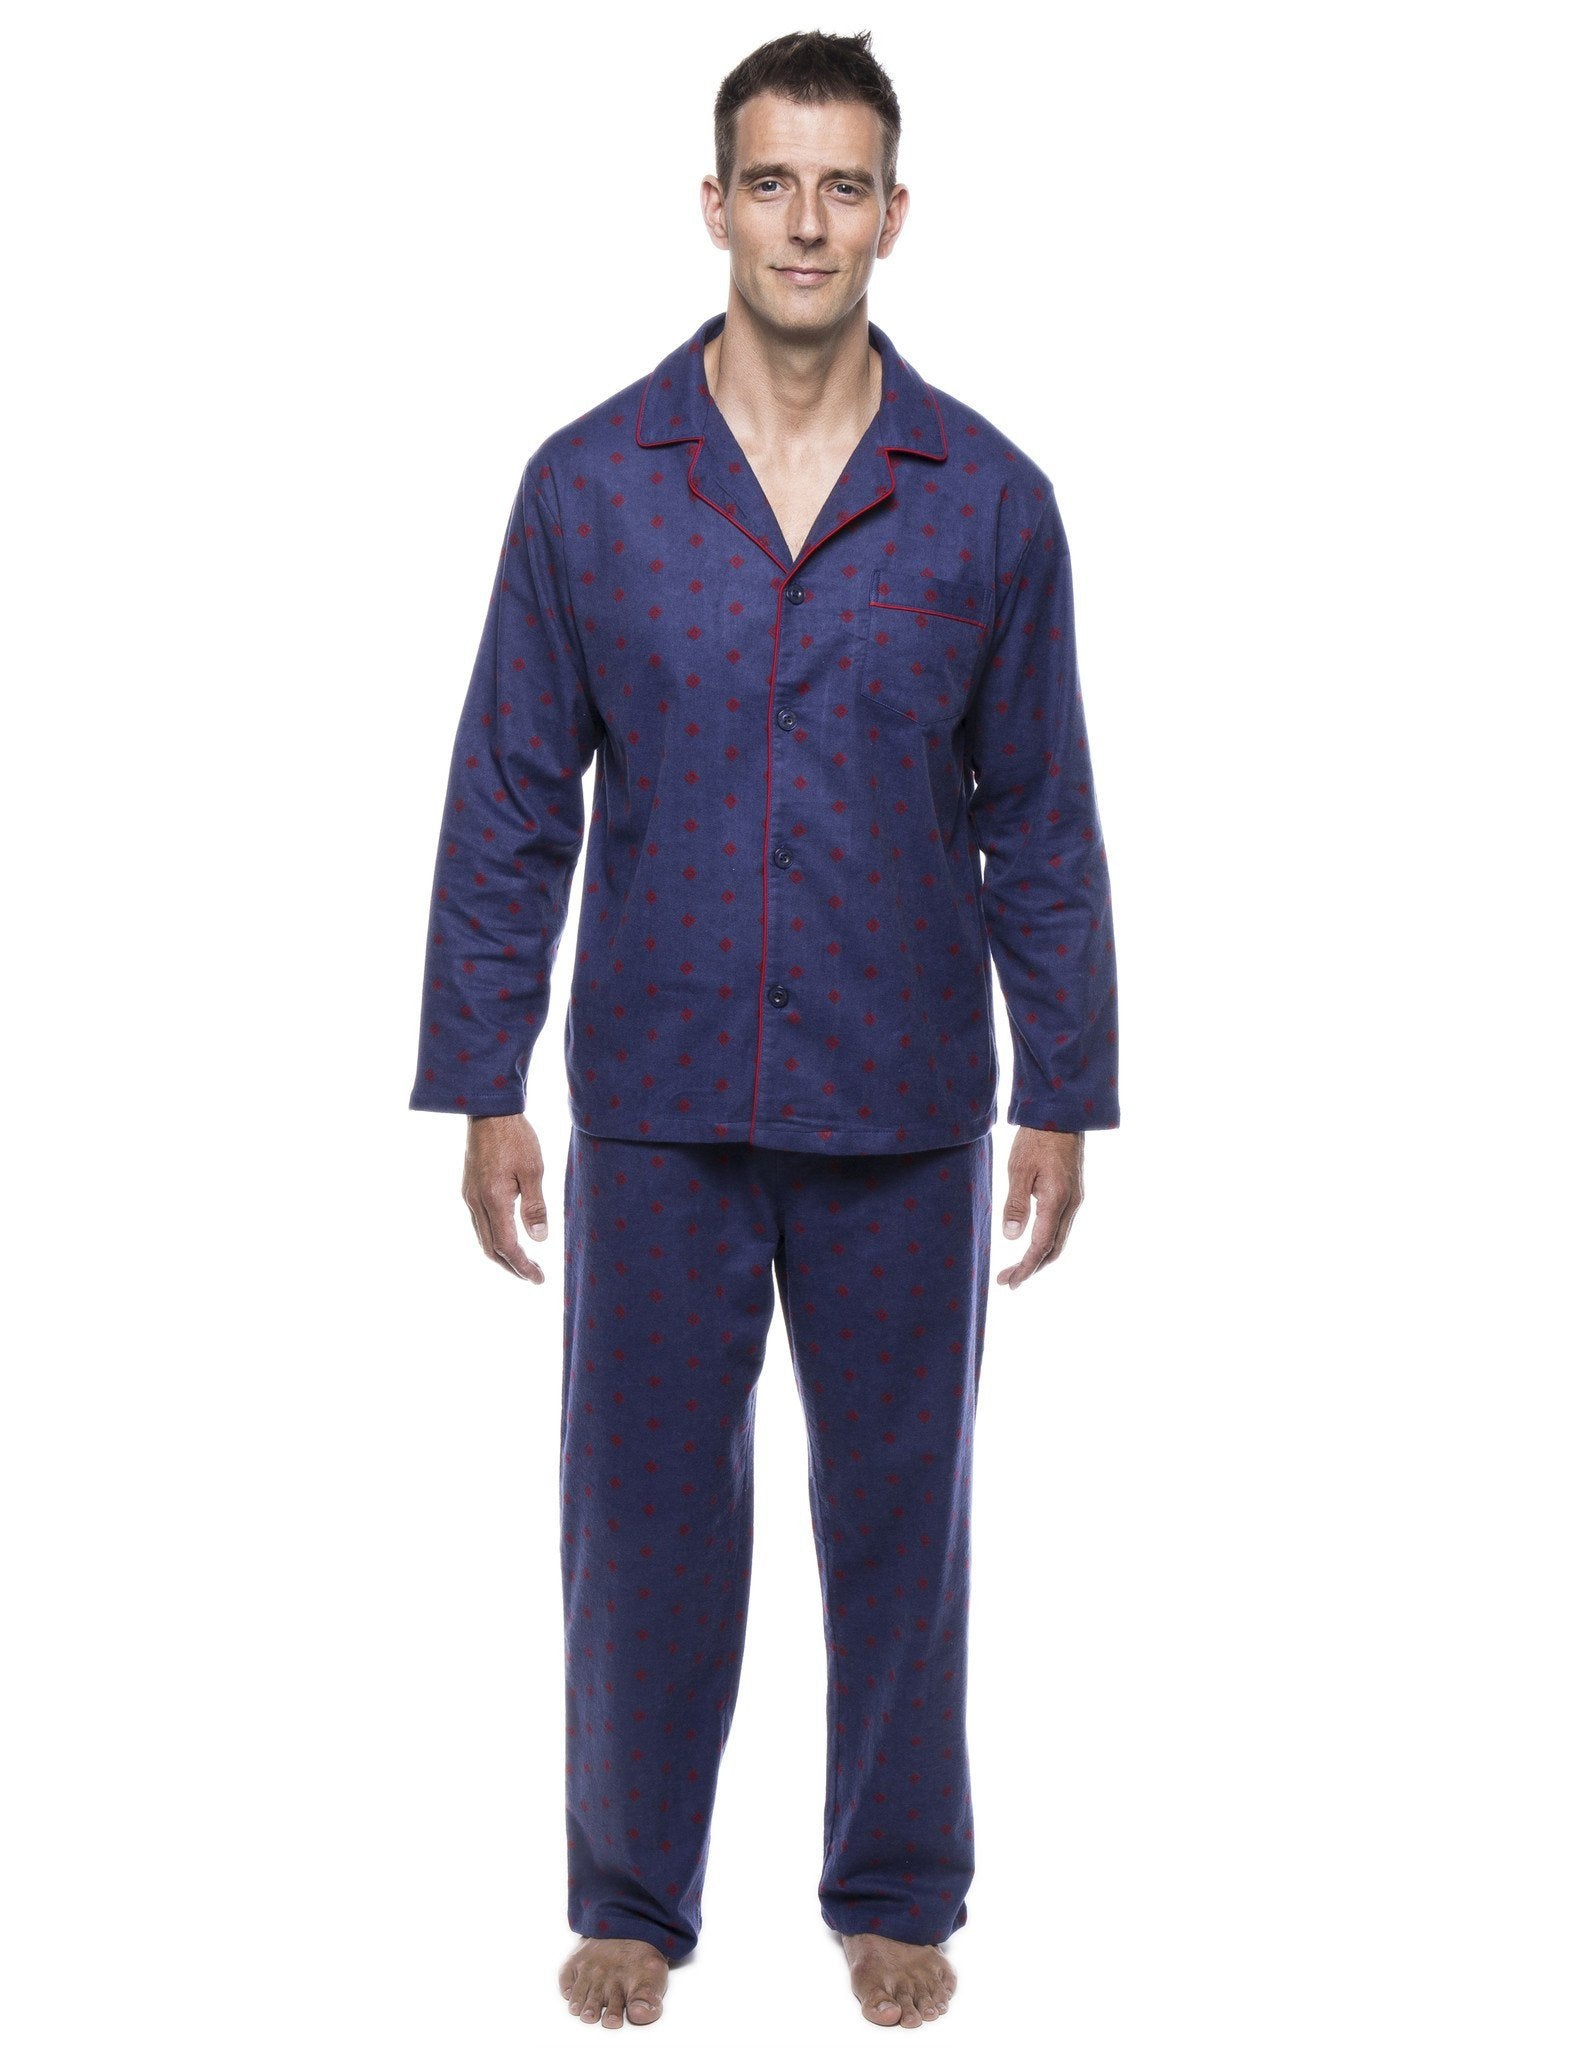 Men's 100% Cotton Flannel Pajama Set - Double Diamond Navy/Red